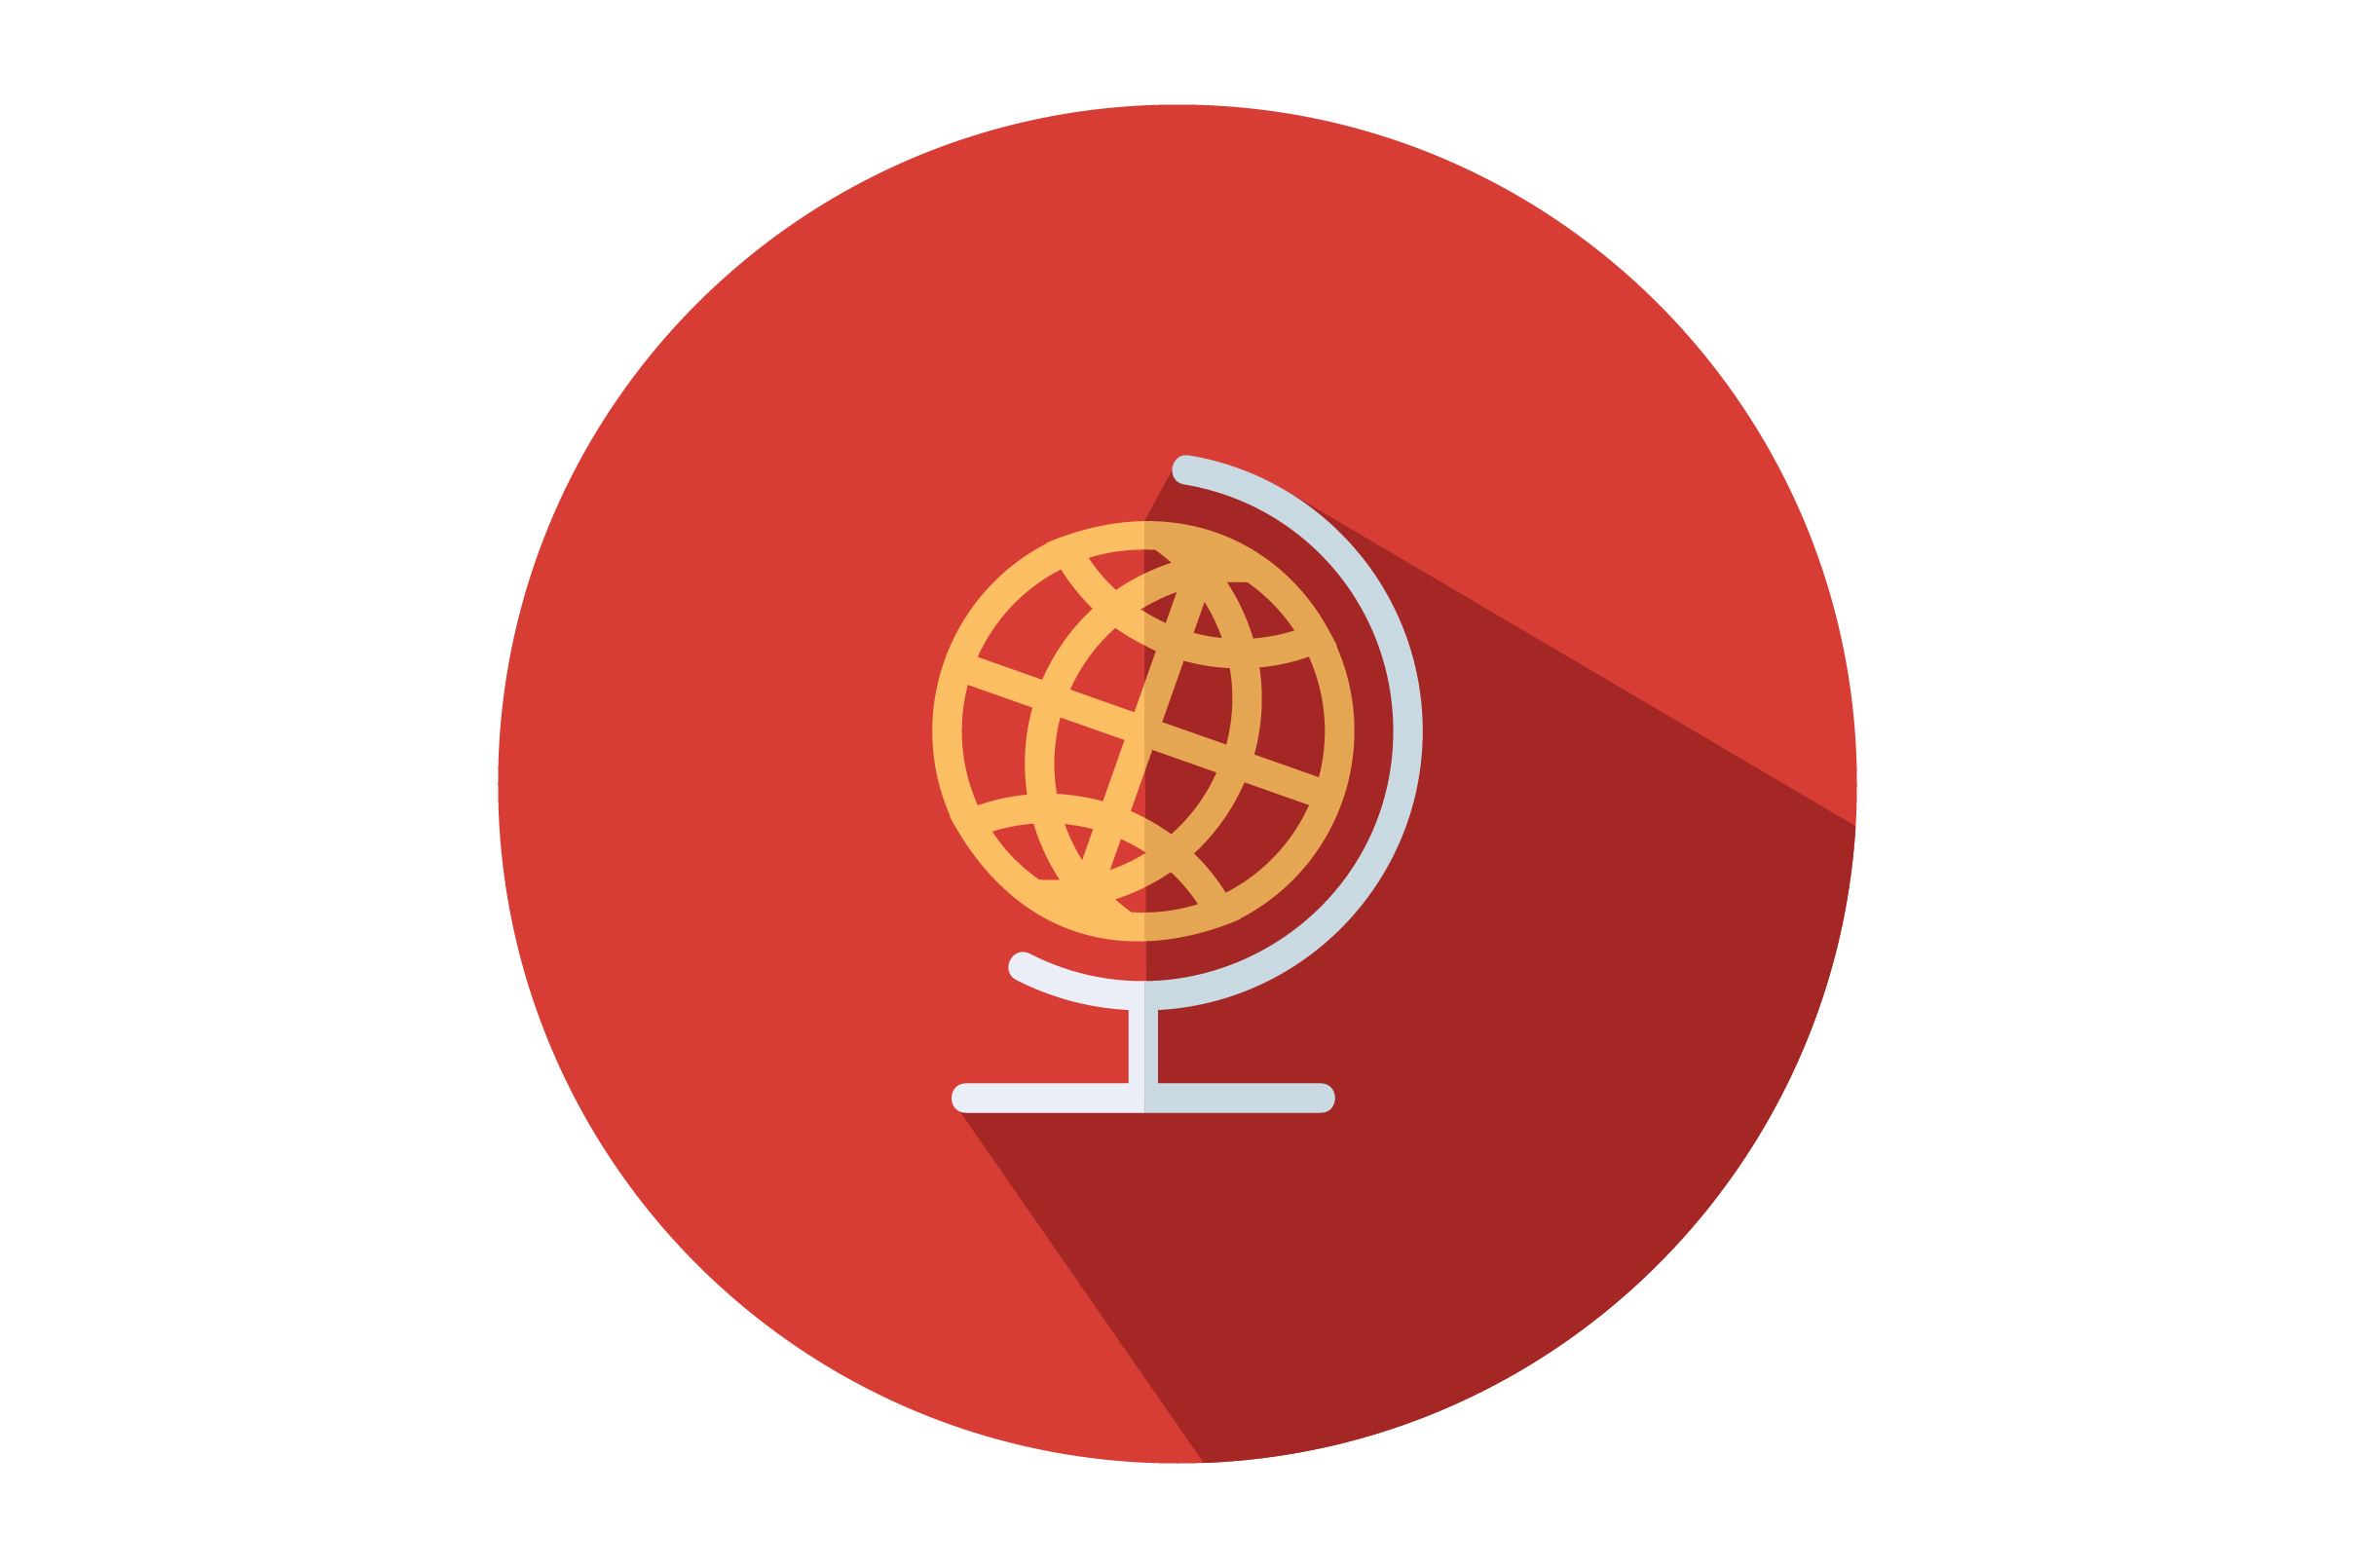 Download Free Globe Flat Icon Vector Graphic By Riduwan Molla Creative Fabrica for Cricut Explore, Silhouette and other cutting machines.